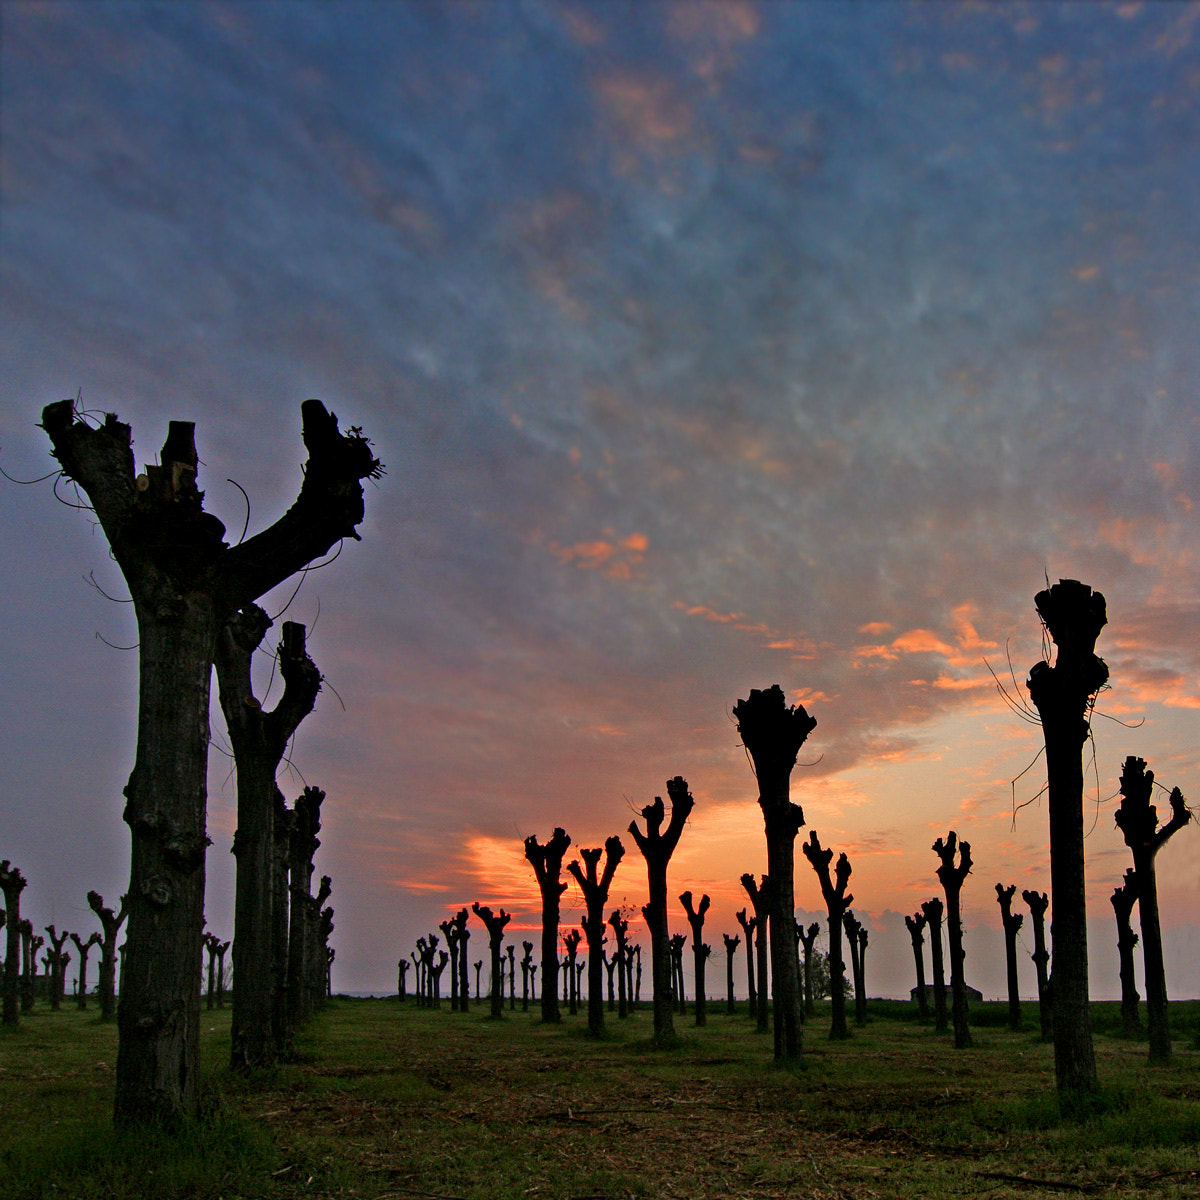 Photograph Sunset on the trees by ivo pandoli on 500px